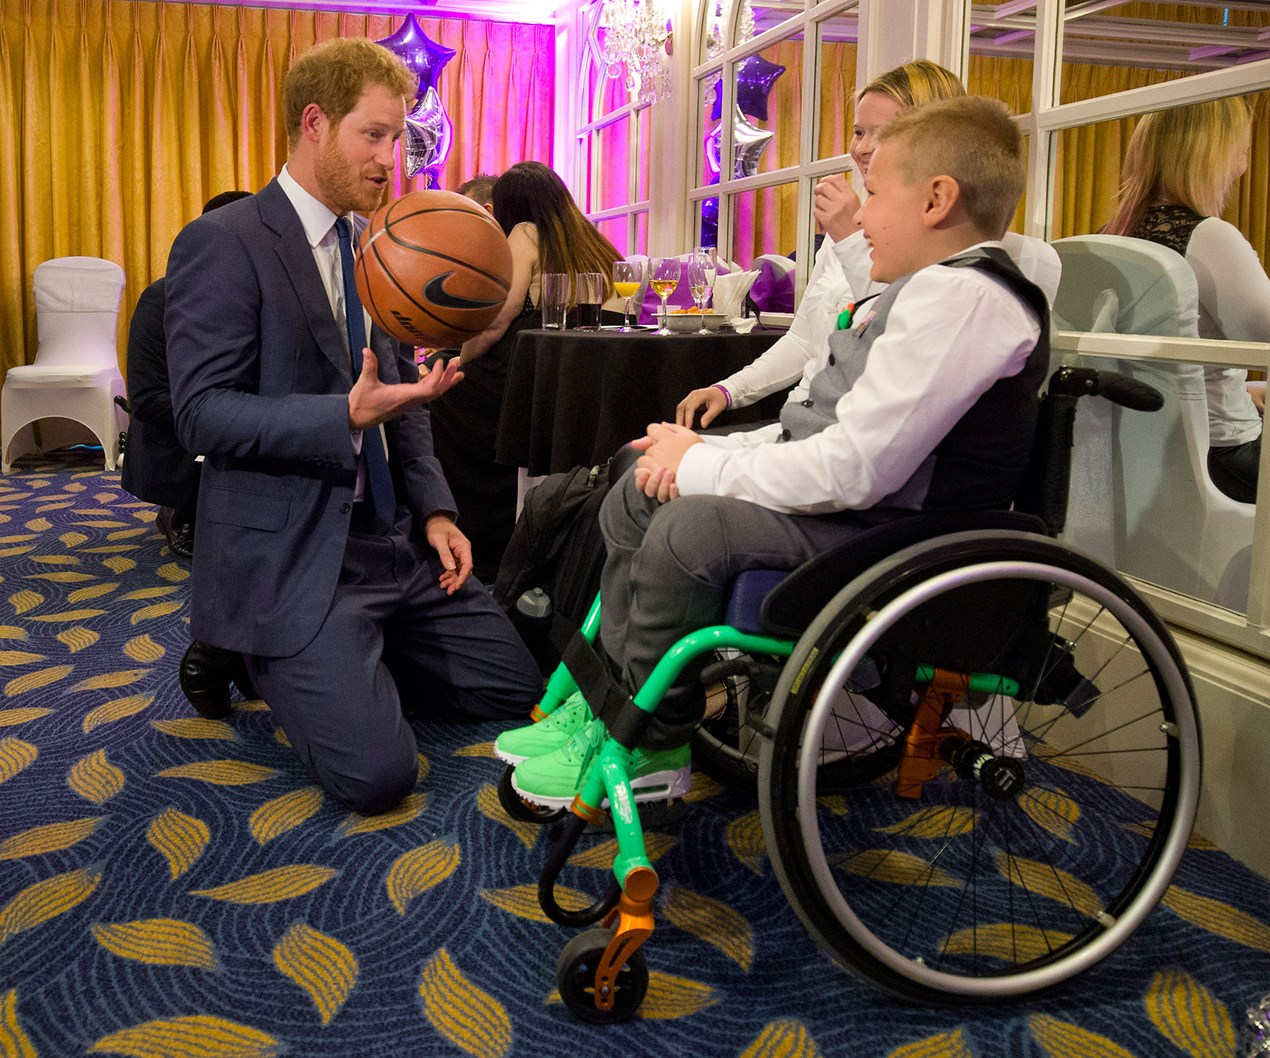 Prince of Hearts: Harry brings smiles to sick kids